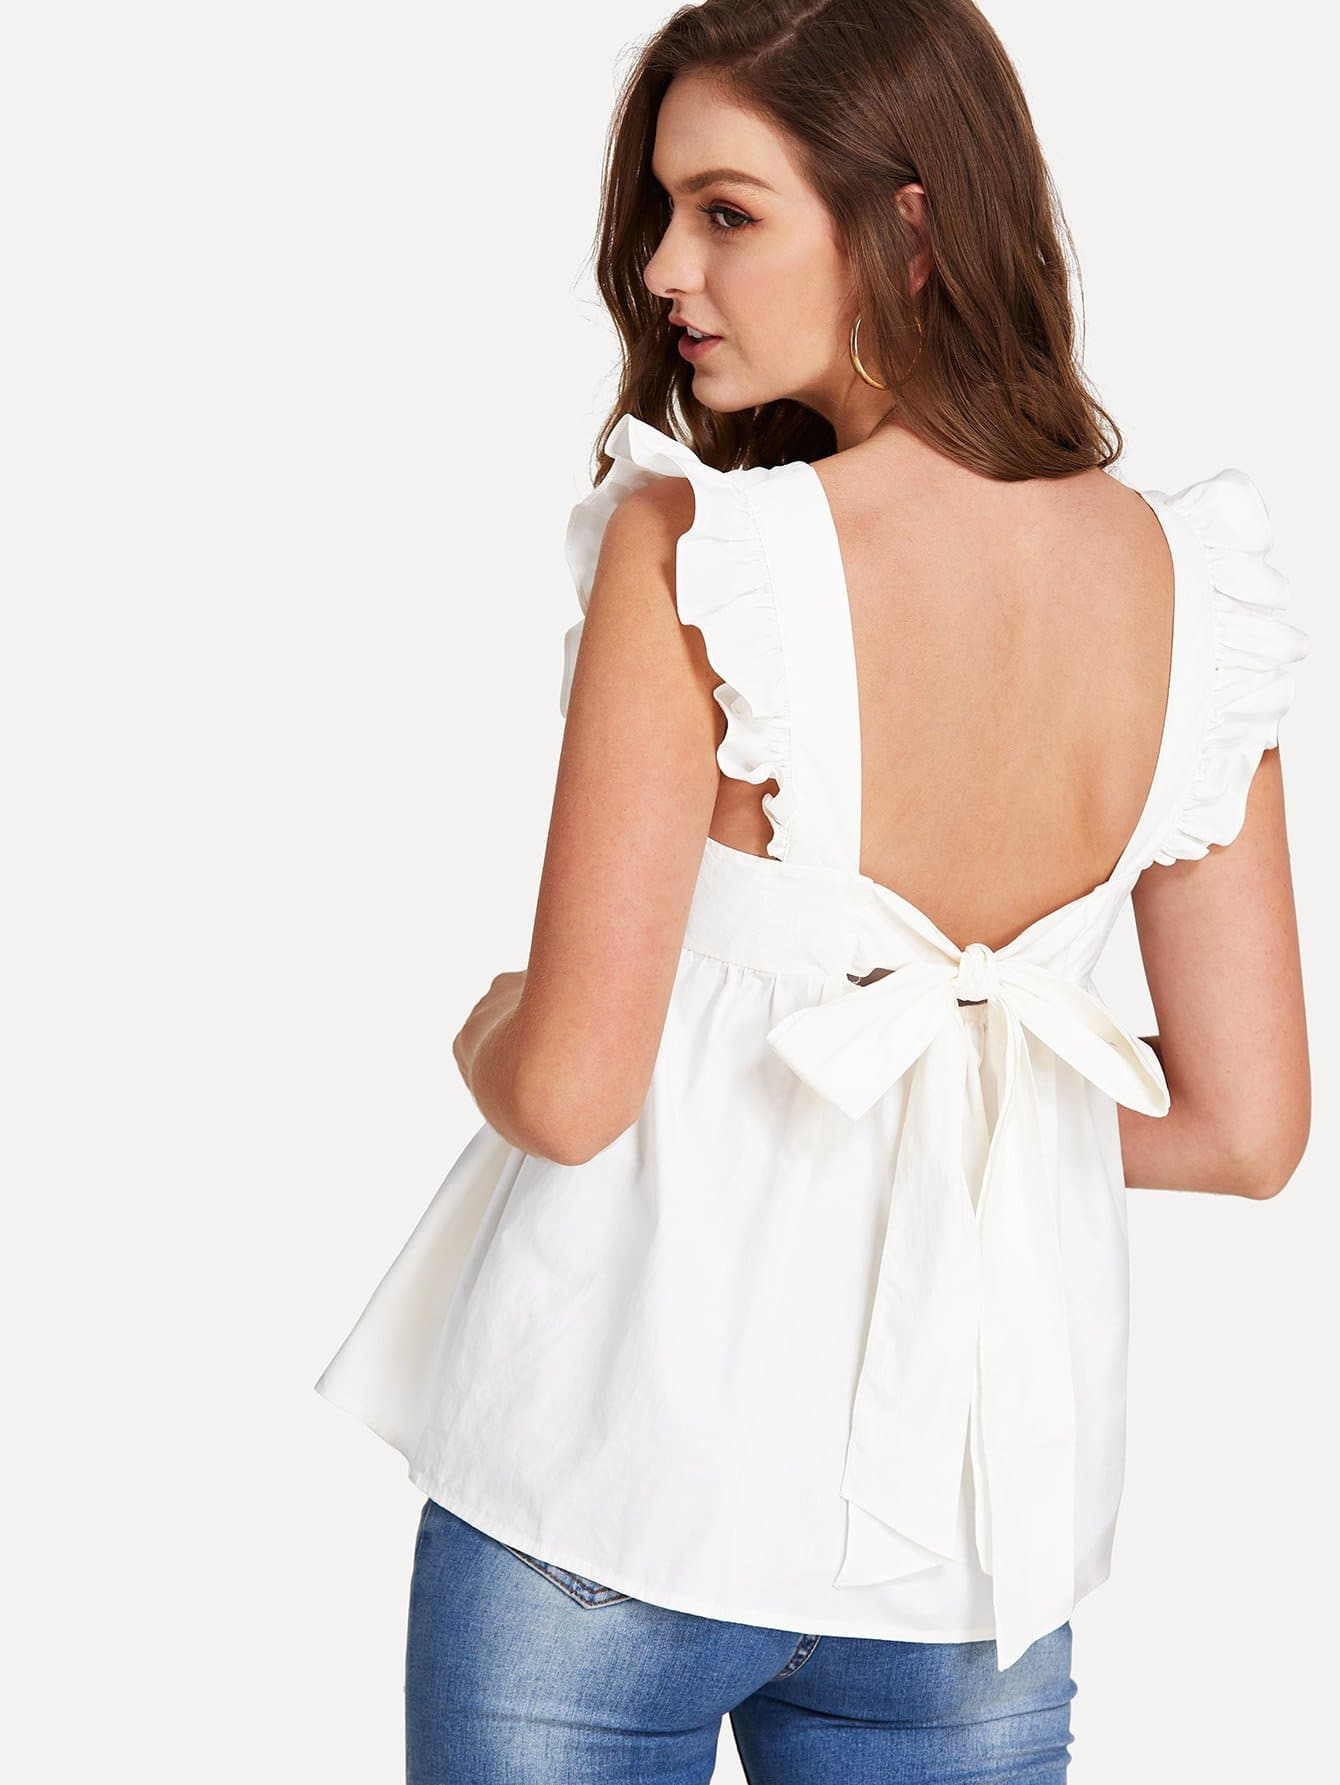 Ruffle Trim Bow Tie Backless Smock Top exaggerate bow tie neck ruffle trim top